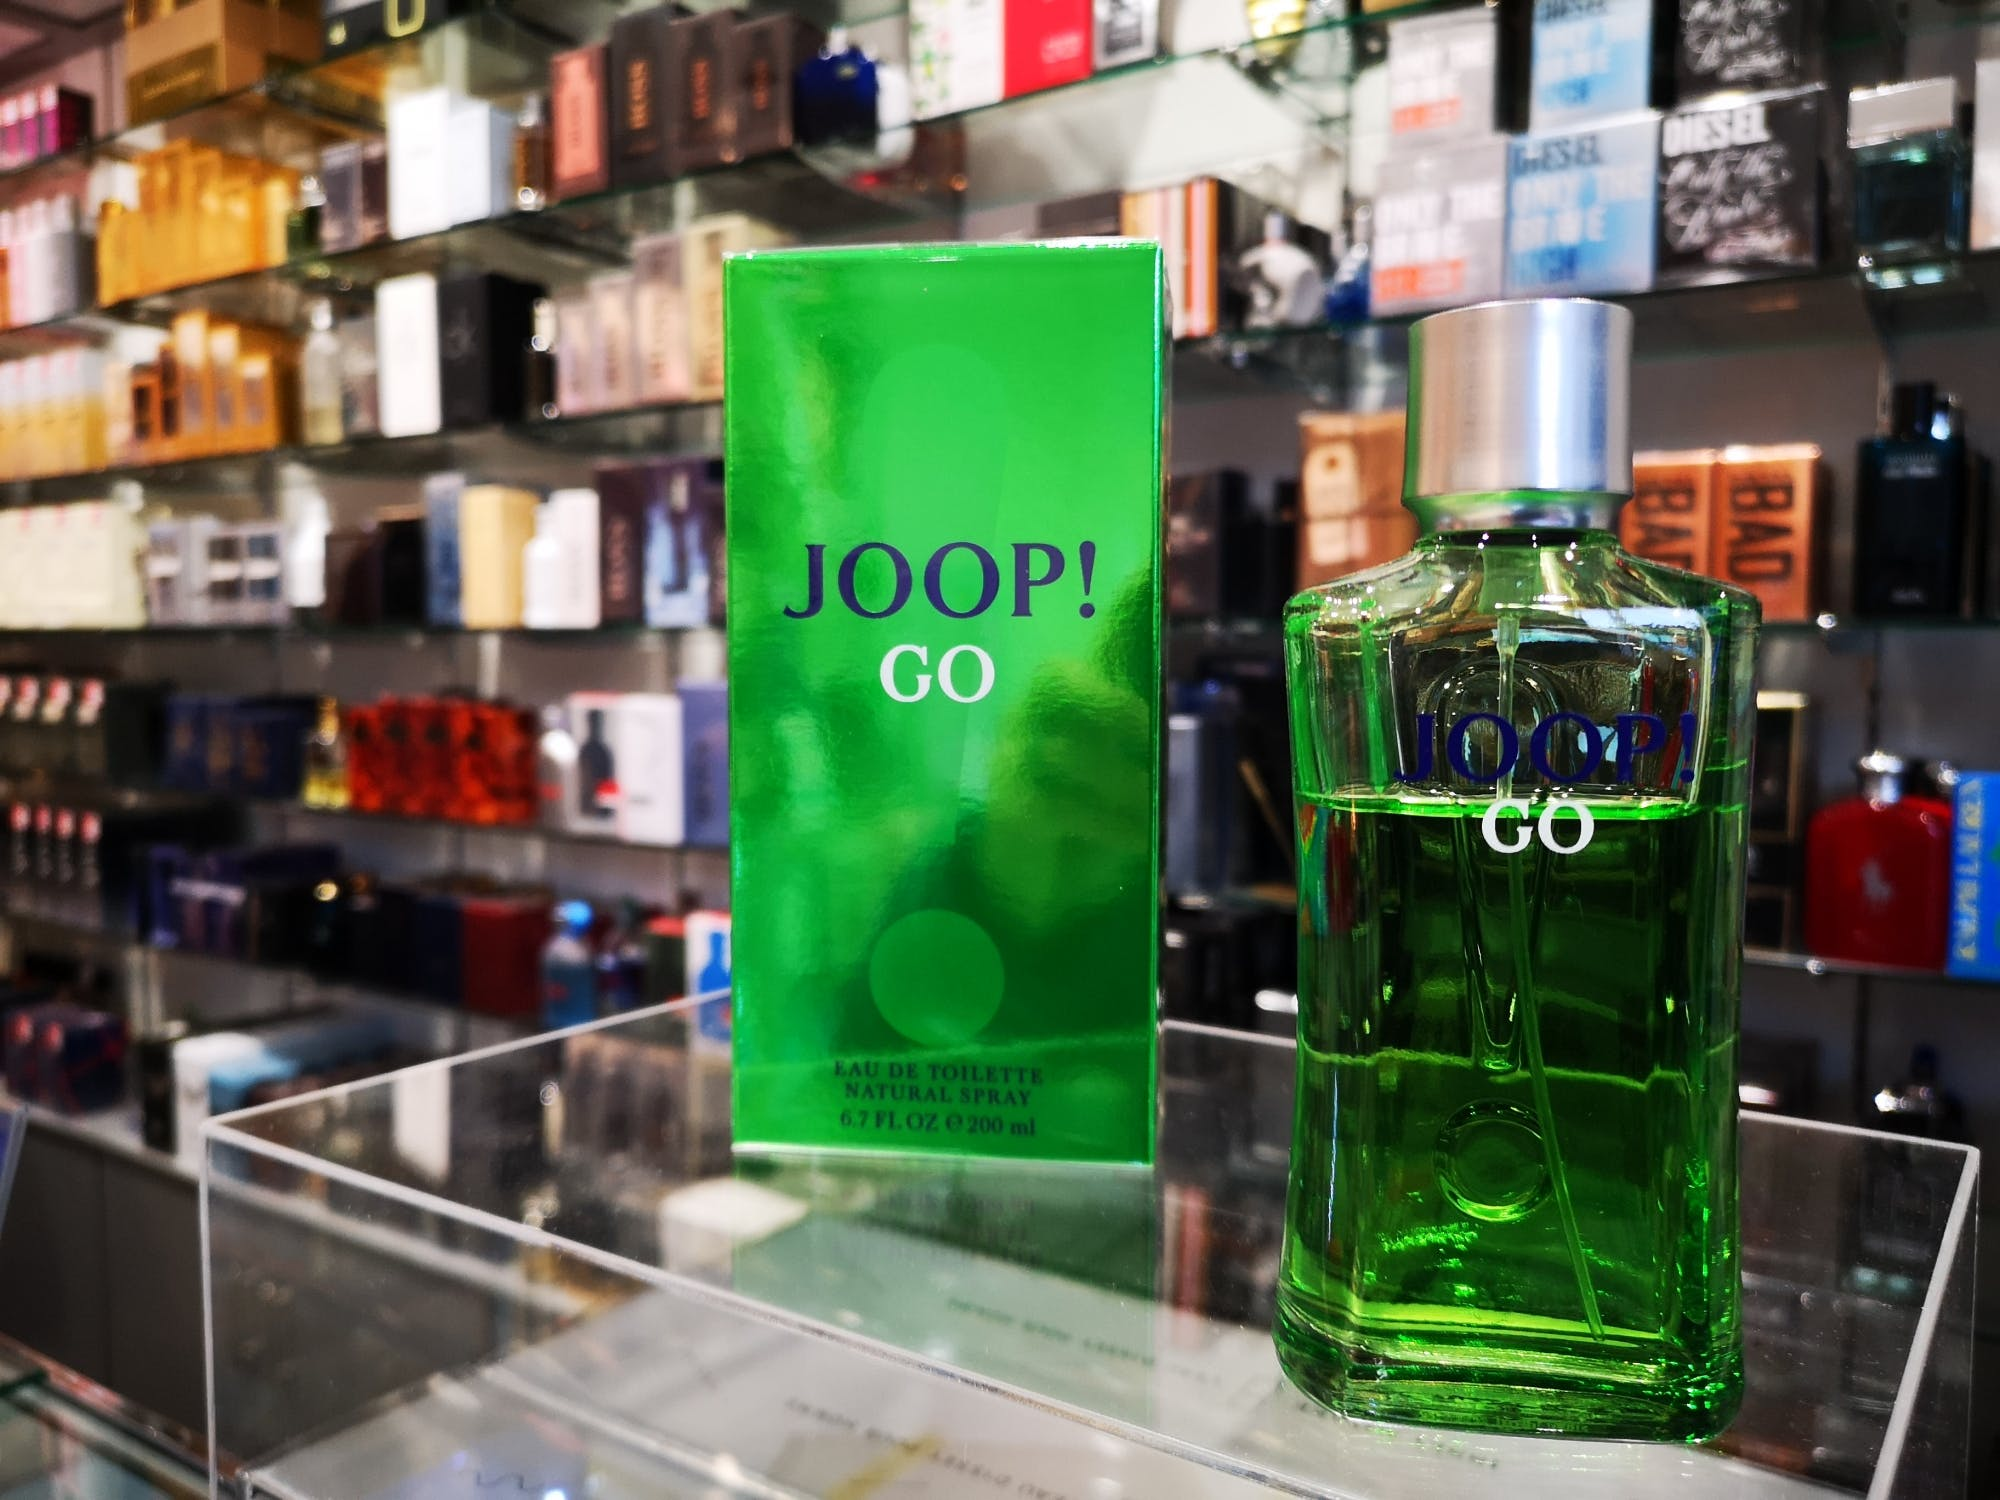 More Wakey-esque rhubarb notes, this time for the chaps with the fresh Joop Go. EdT £23 for 100ml at The Fragrance Shop.